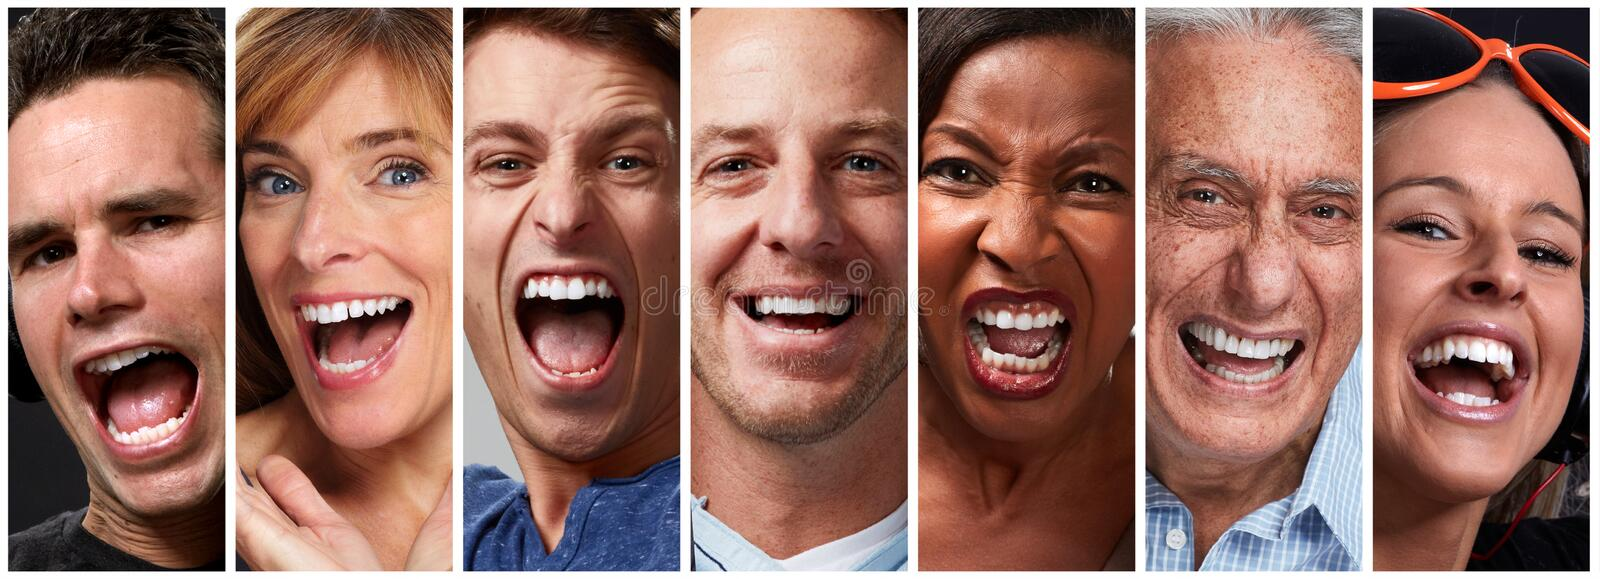 Happy people faces royalty free stock images